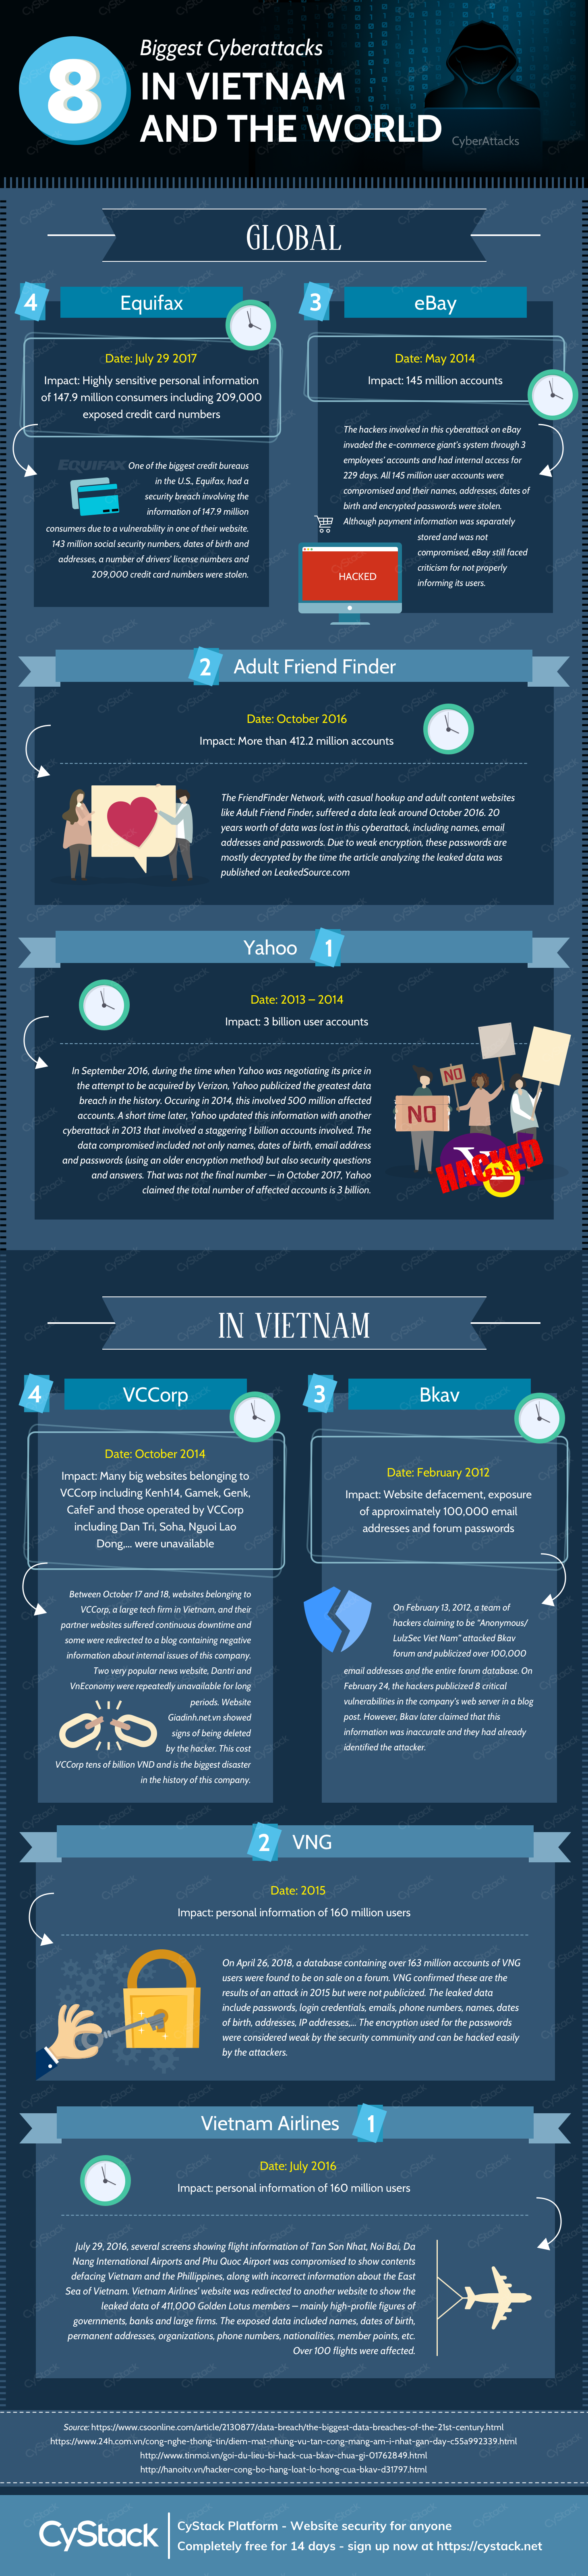 Top 8 biggest cyberattacks in Vietnam and the world cystack